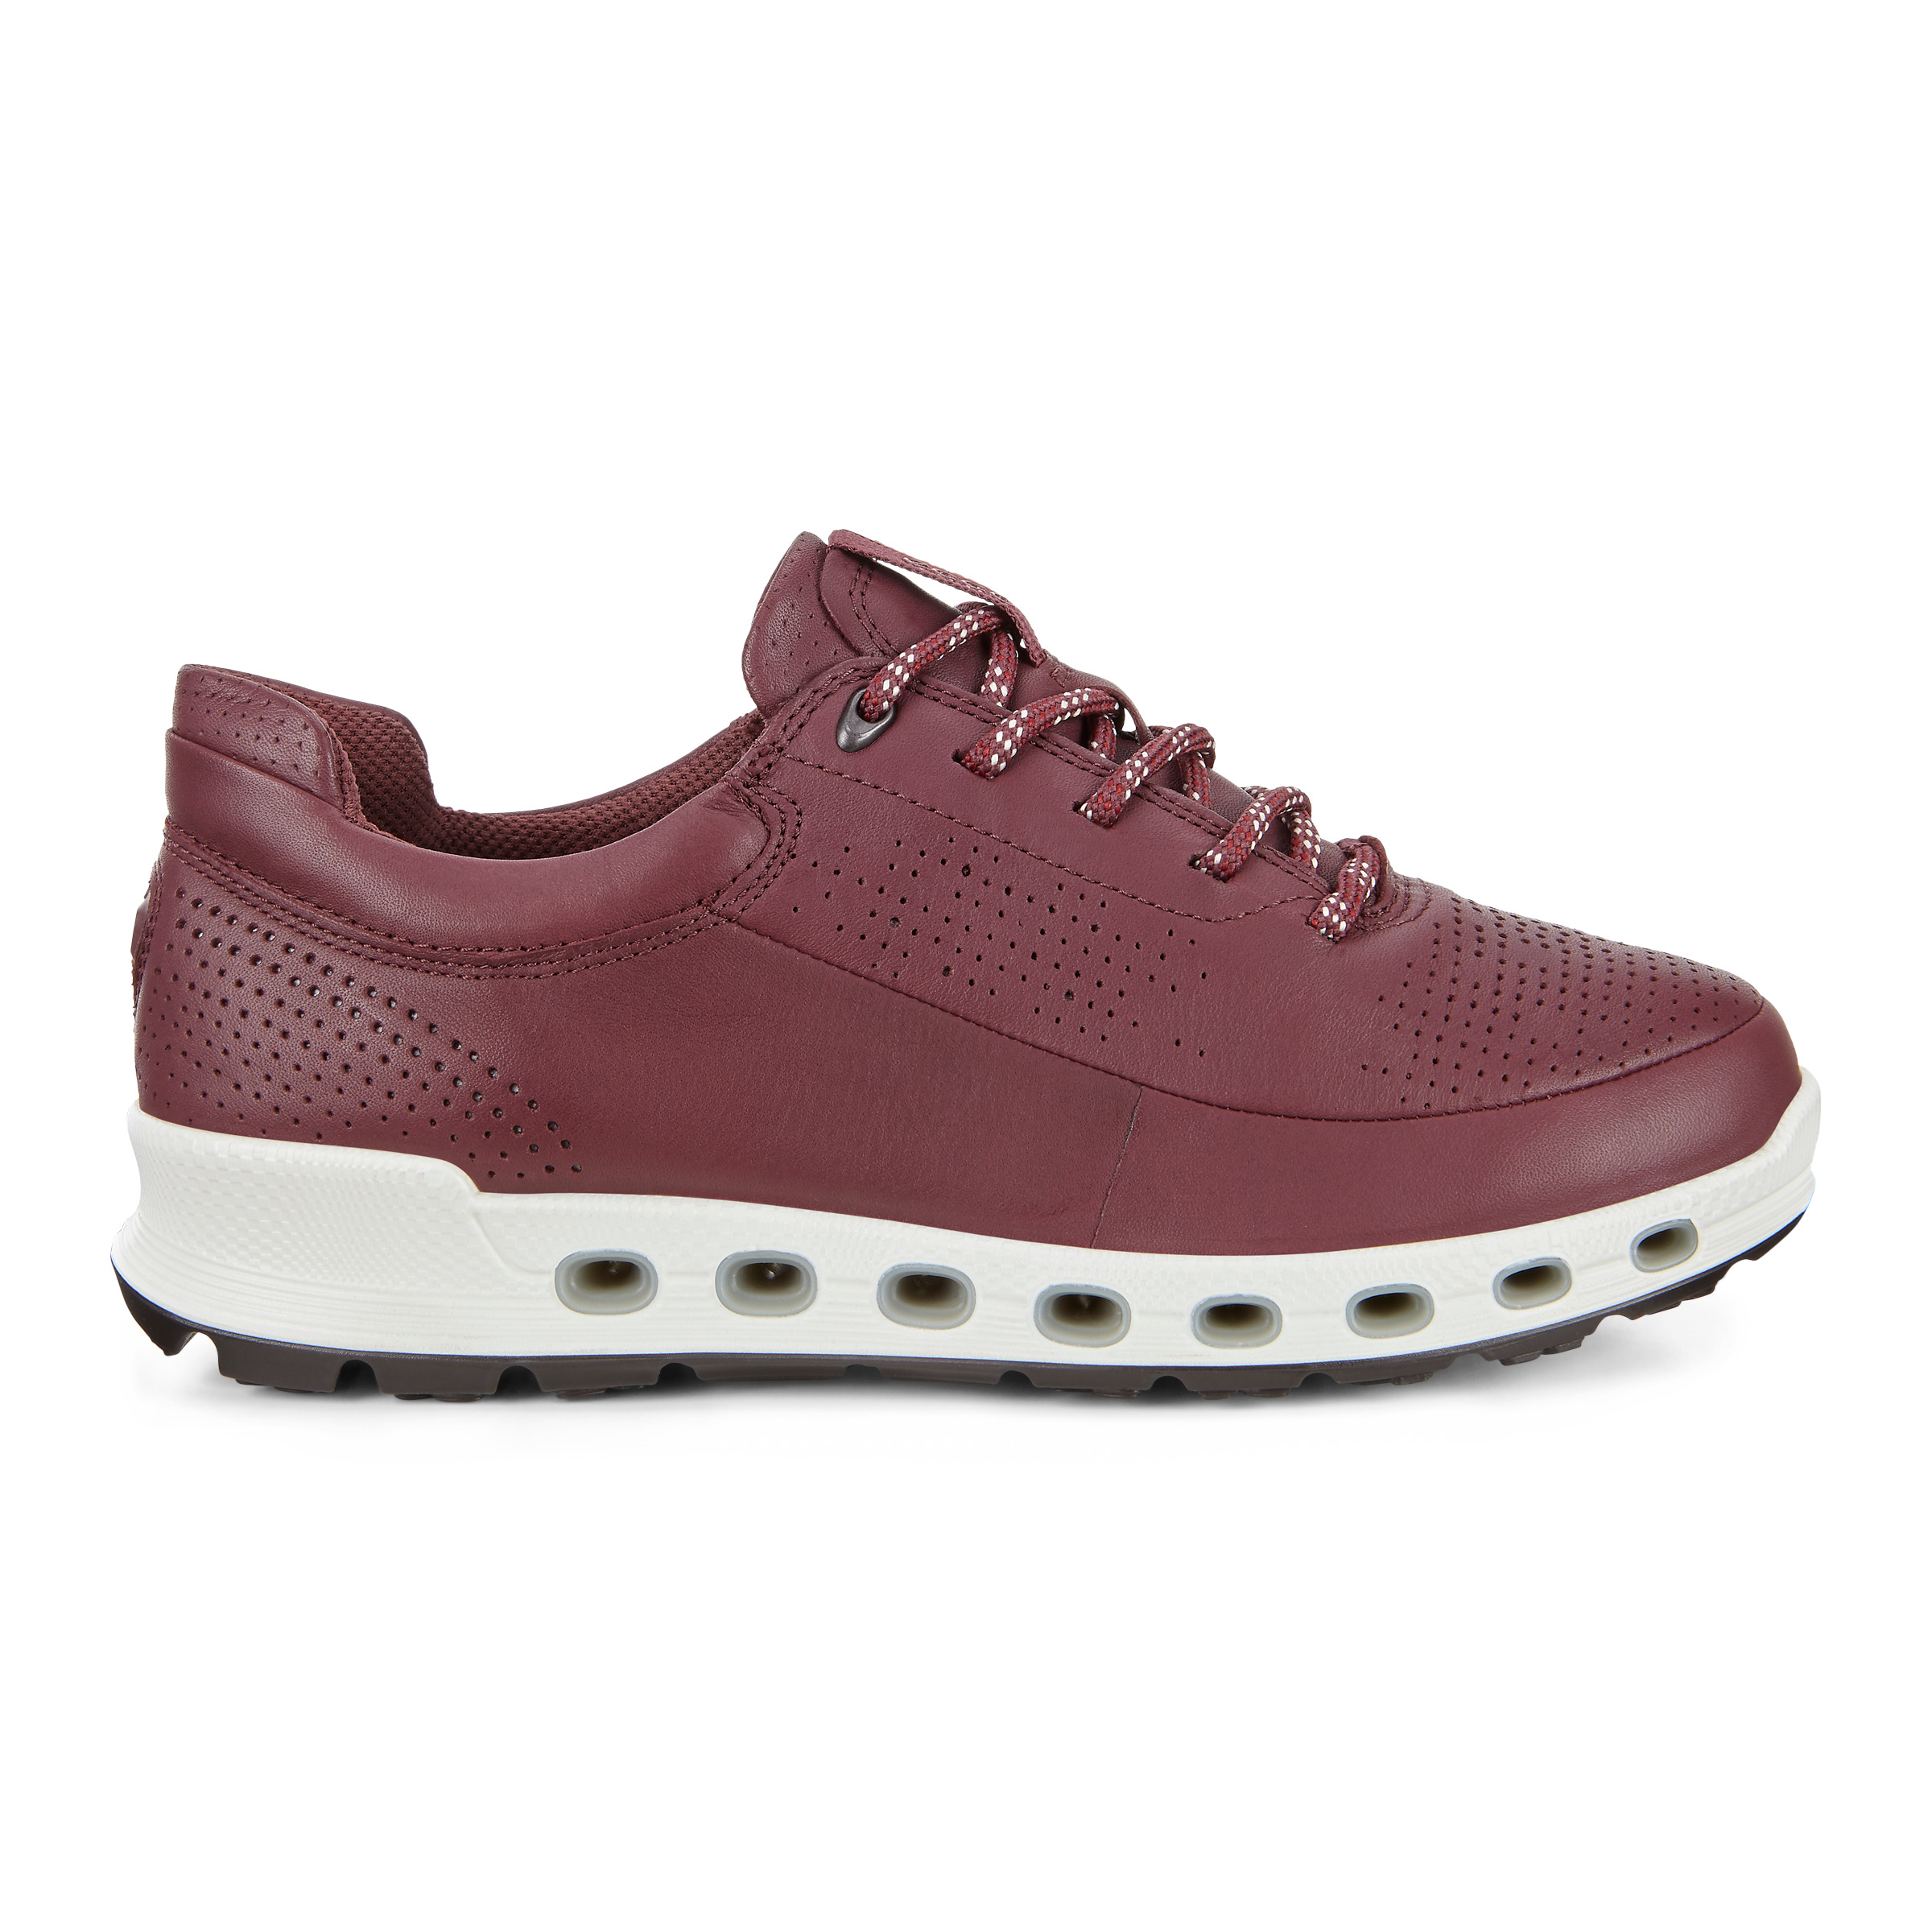 ECCO Womens Cool 2.0 Gtx Sneakers Size 7-7.5 Wine